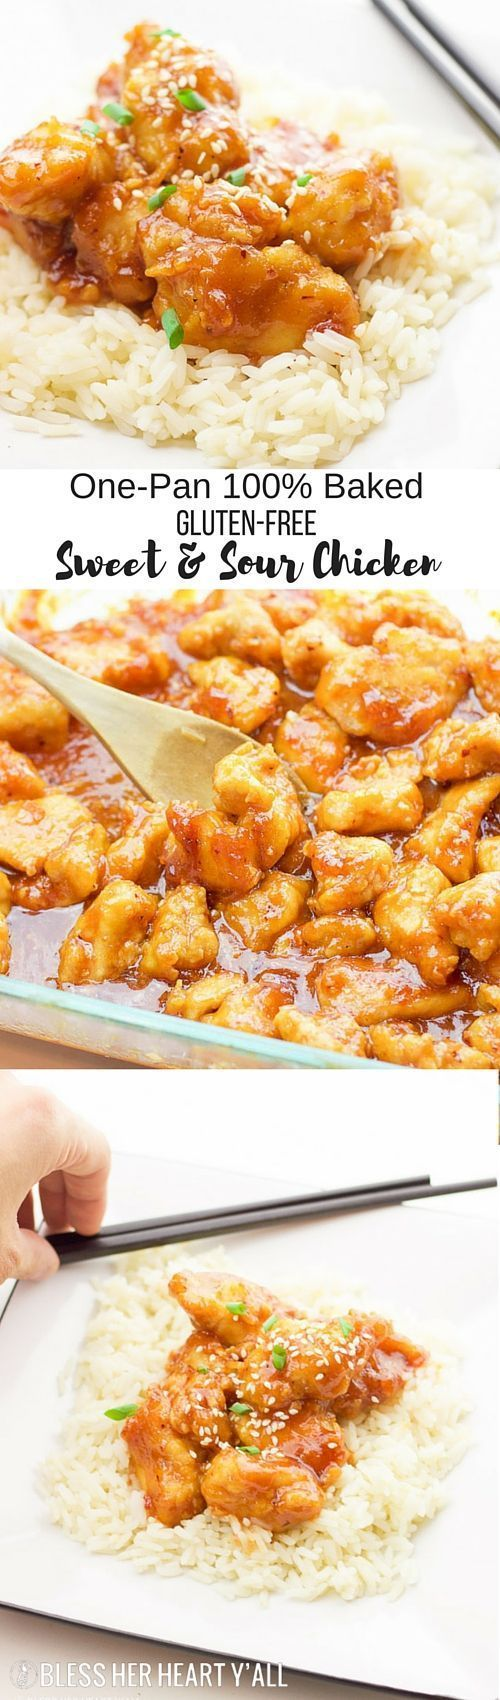 One-Pan Baked Gluten-Free Sweet and Sour Chicken